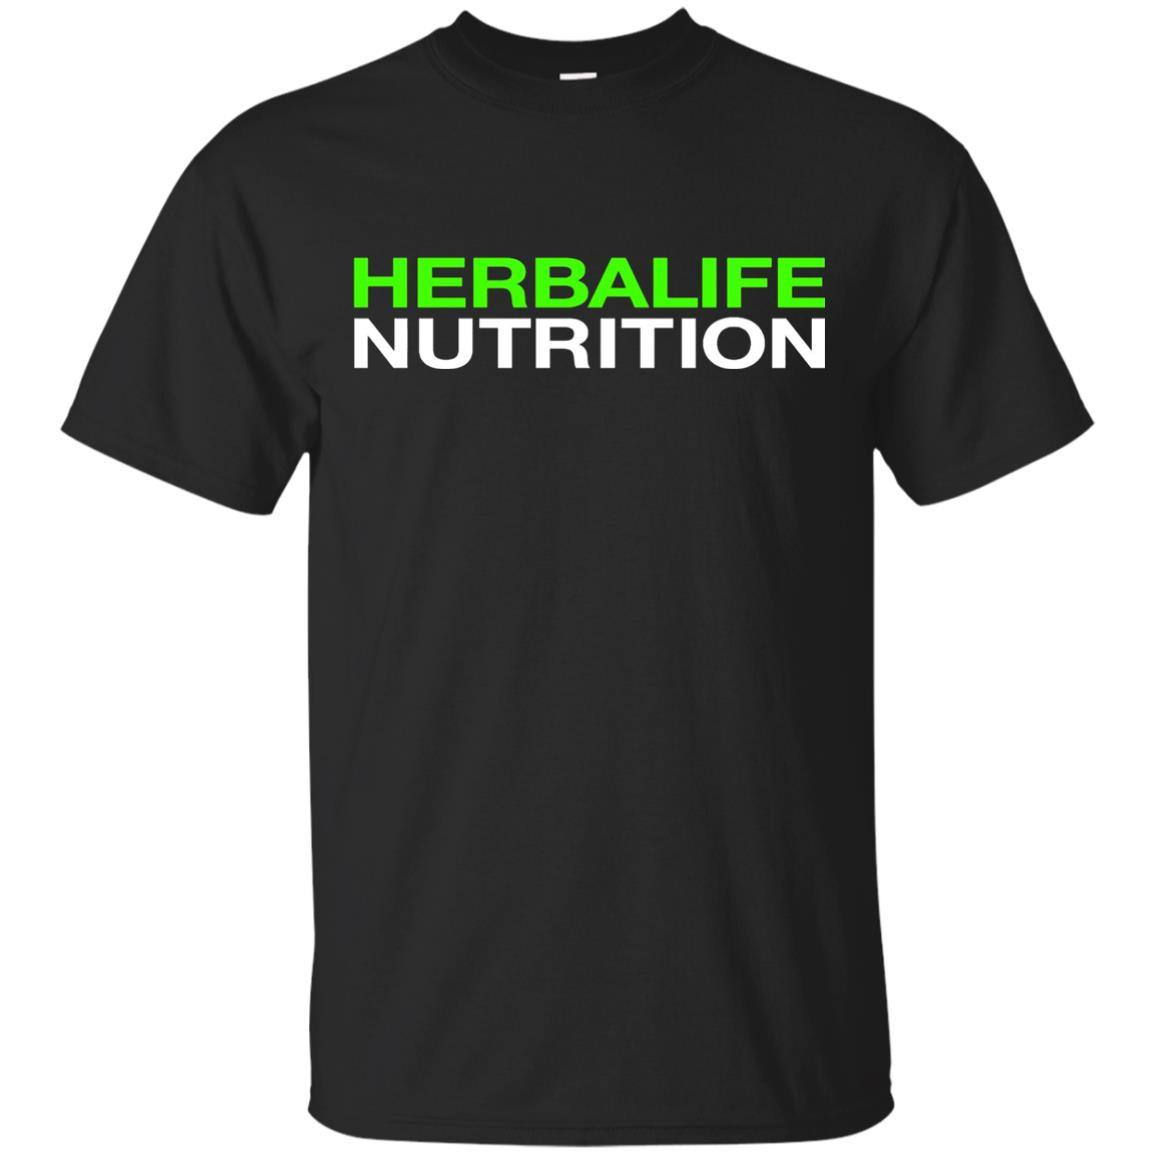 HERBALIFE NUTRITION T-Shirt